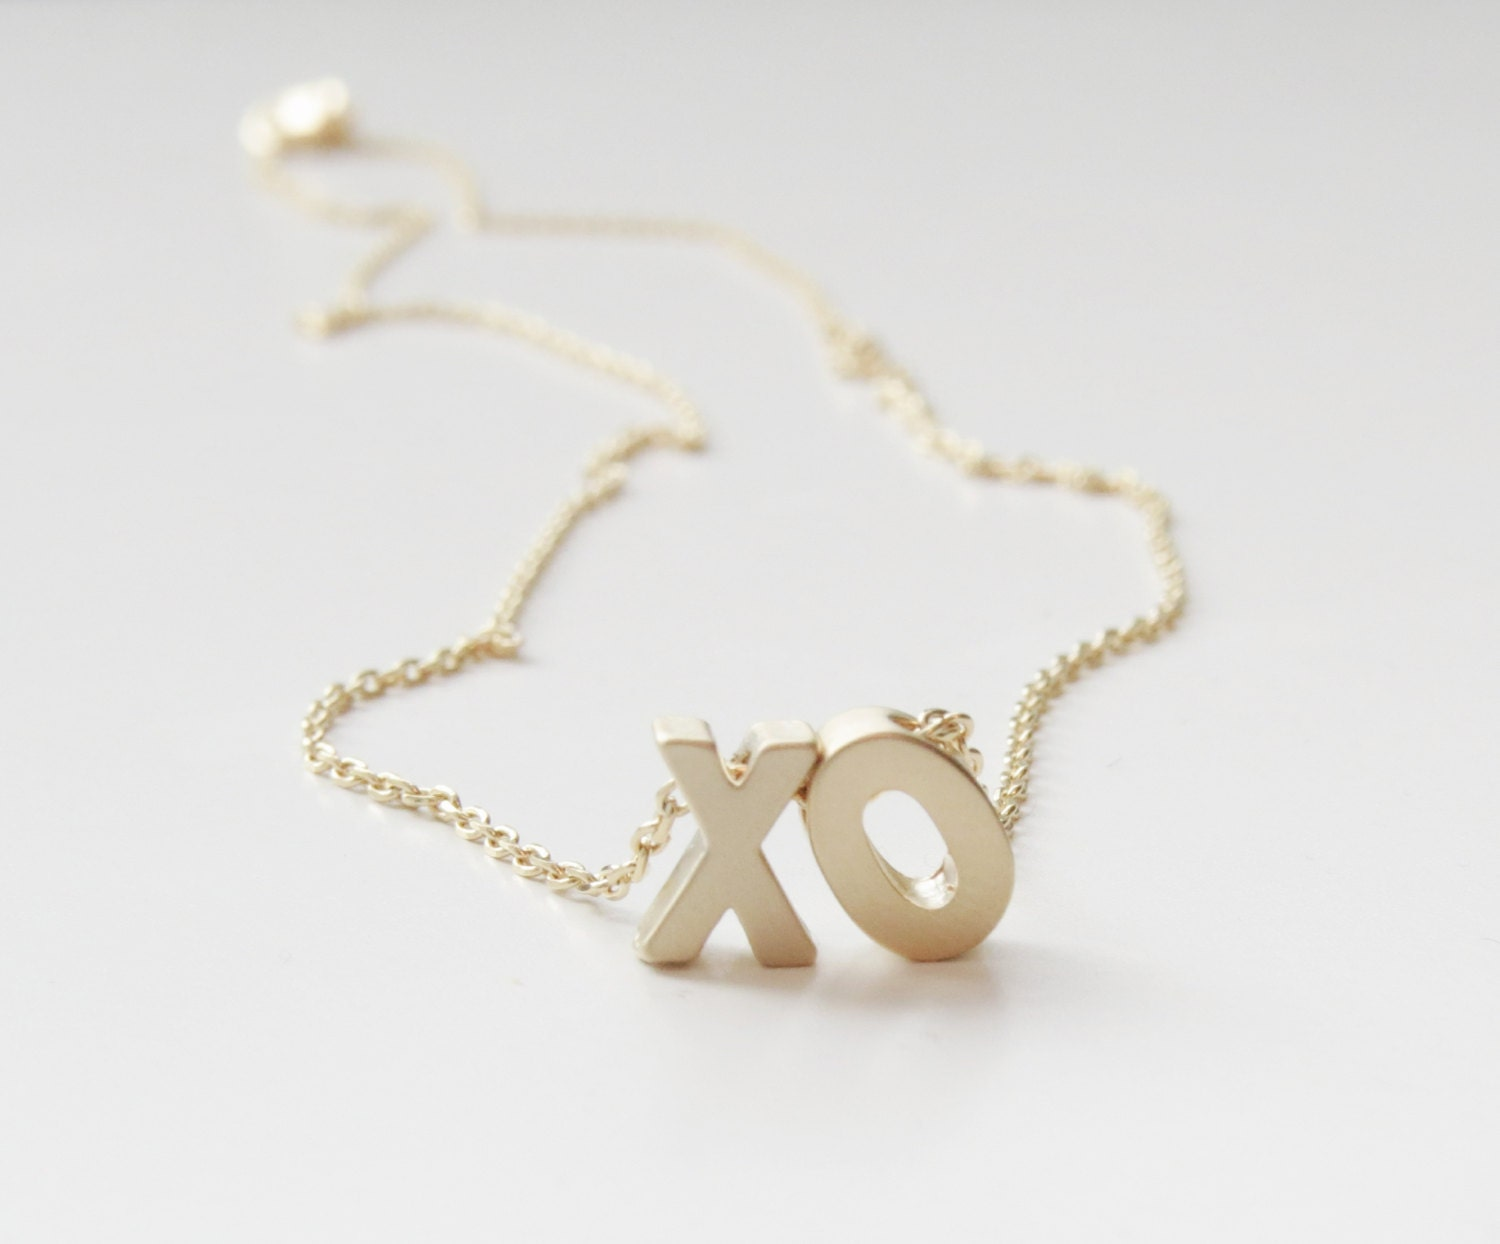 xo necklace beyonce xo necklace gold word necklace gold